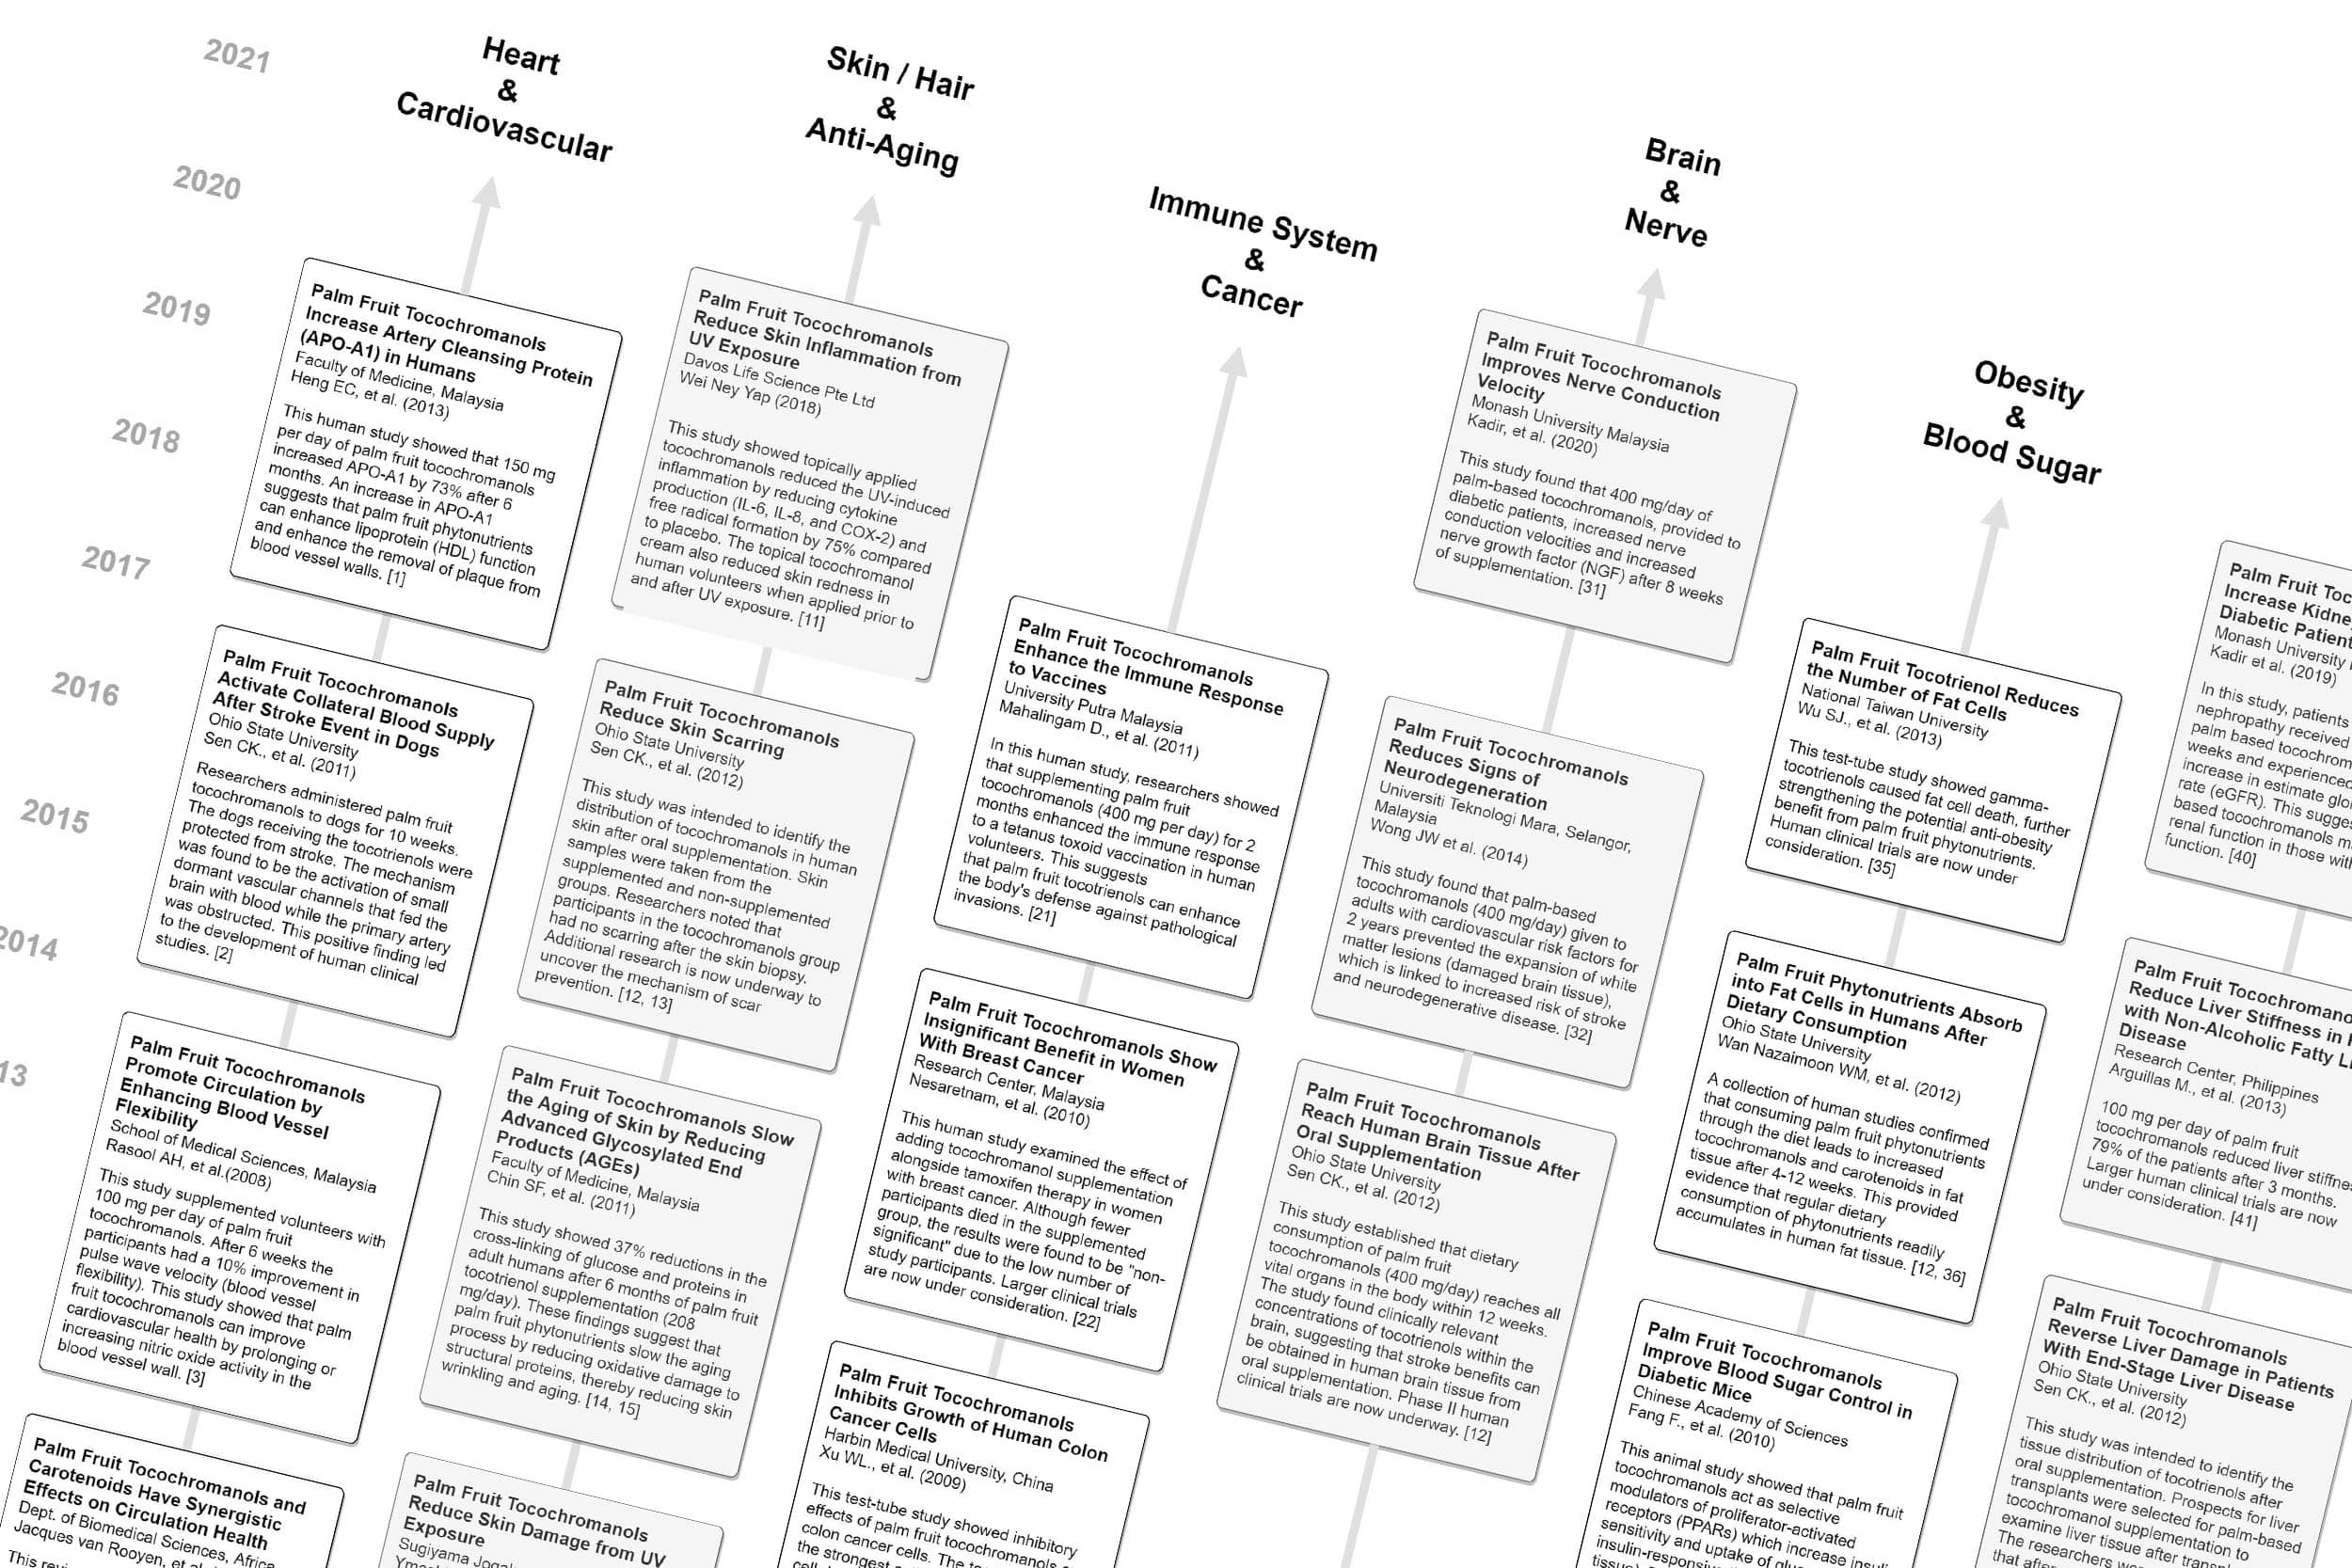 Image of the timeline of the major research findings on palm fruit nutrients